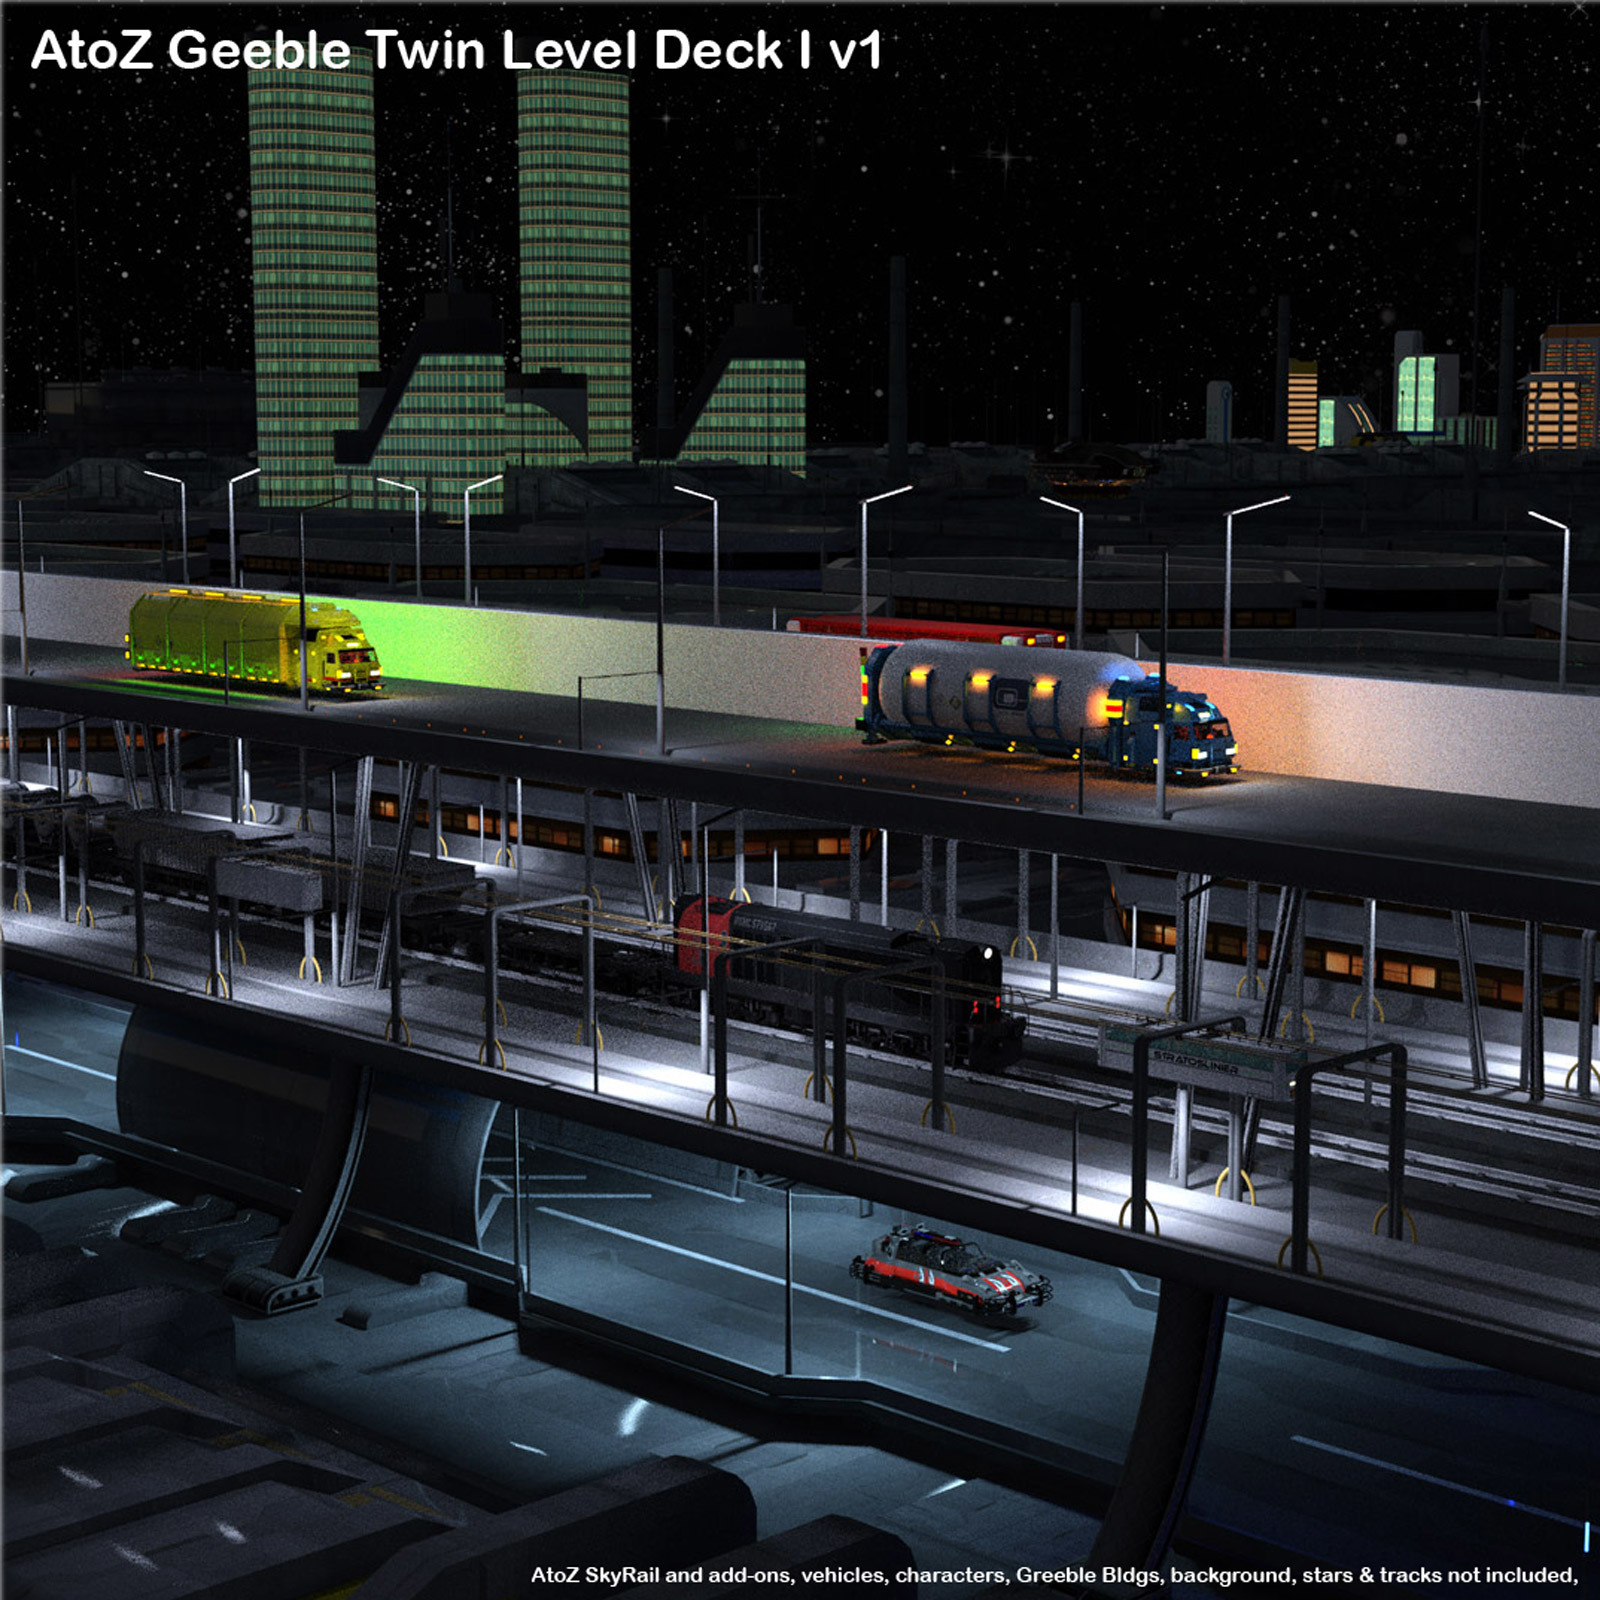 AtoZ Geeble Elevated Twin Deck I v1 by AtoZ